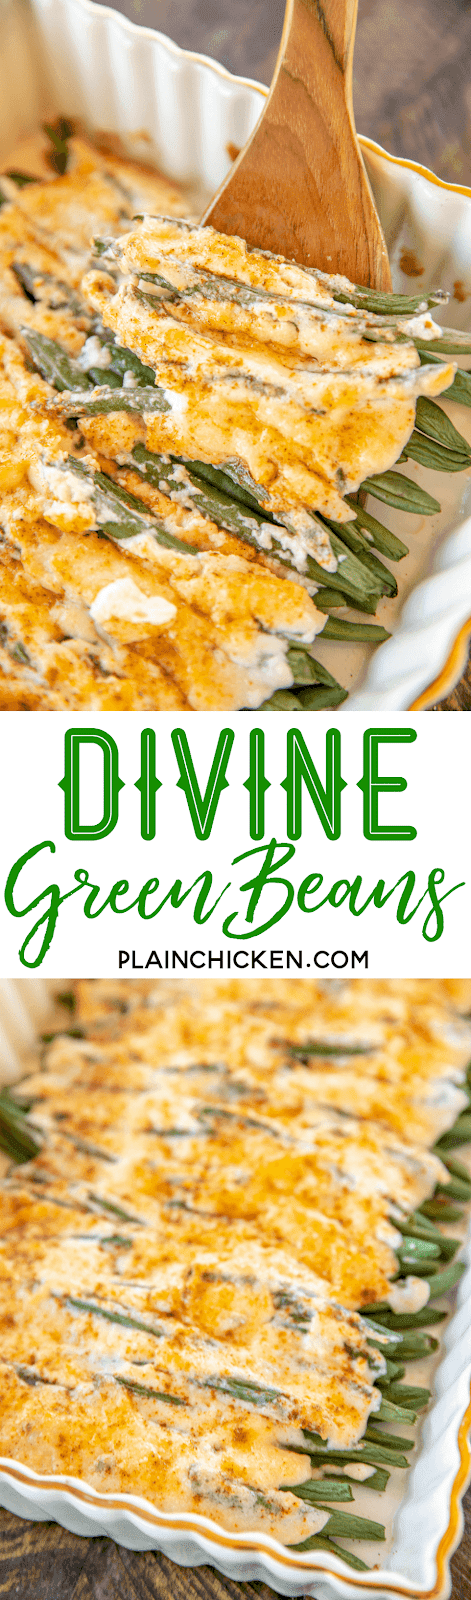 Divine Green Beans - only 4 ingredients! Fresh green beans, mayonnaise, parmesan cheese and paprika. Can add garlic salt too. Ready to eat in 20 minutes. We make this at least once a week! Our FAVORITE green bean recipe!! #sidedish #greenbeans #veggie